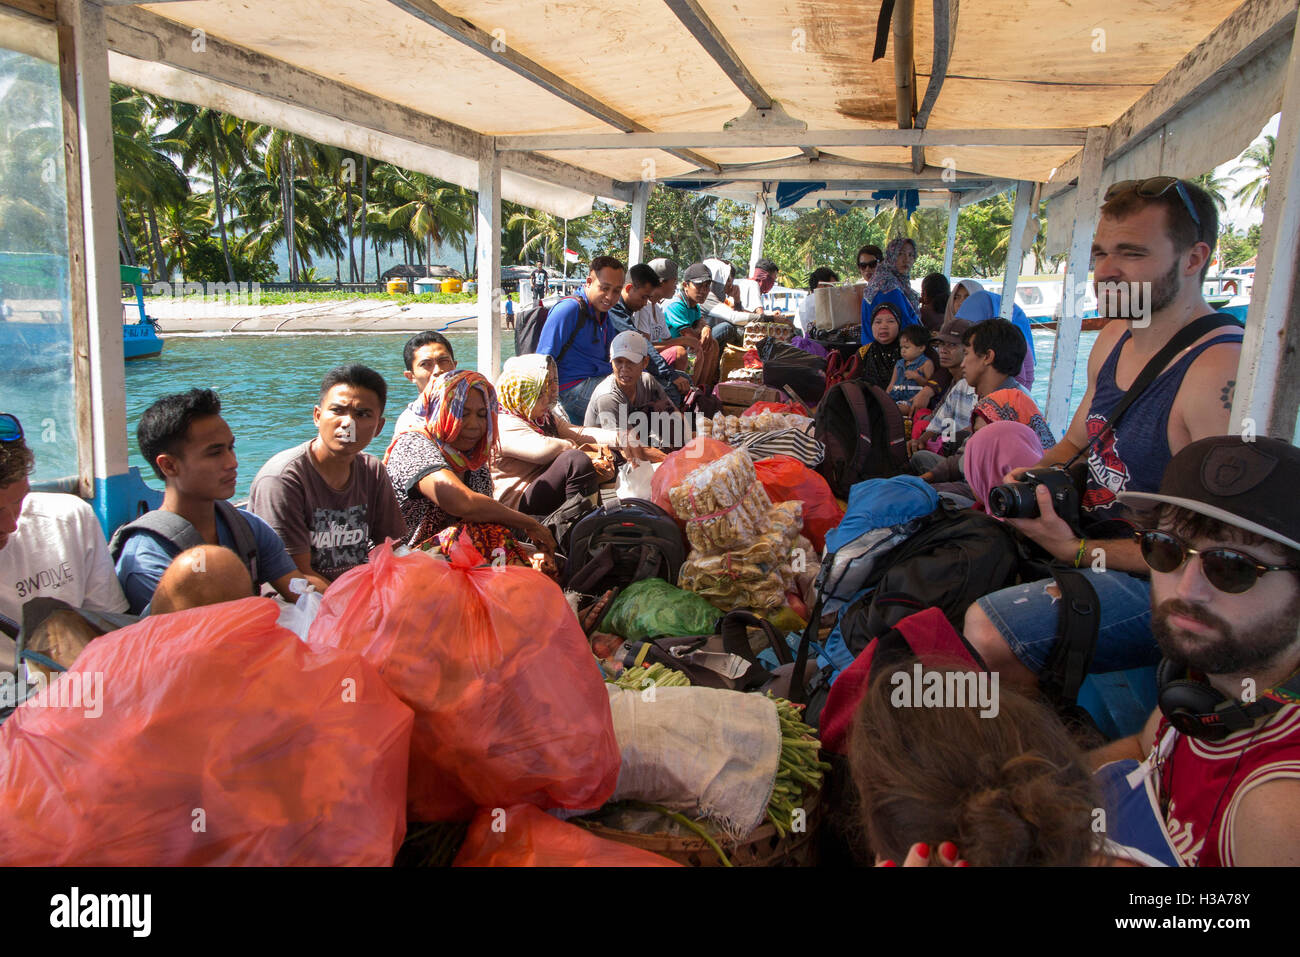 Indonesia, Lombok, Bangsal, passengers and cargo on public ferry to Gili Air - Stock Image